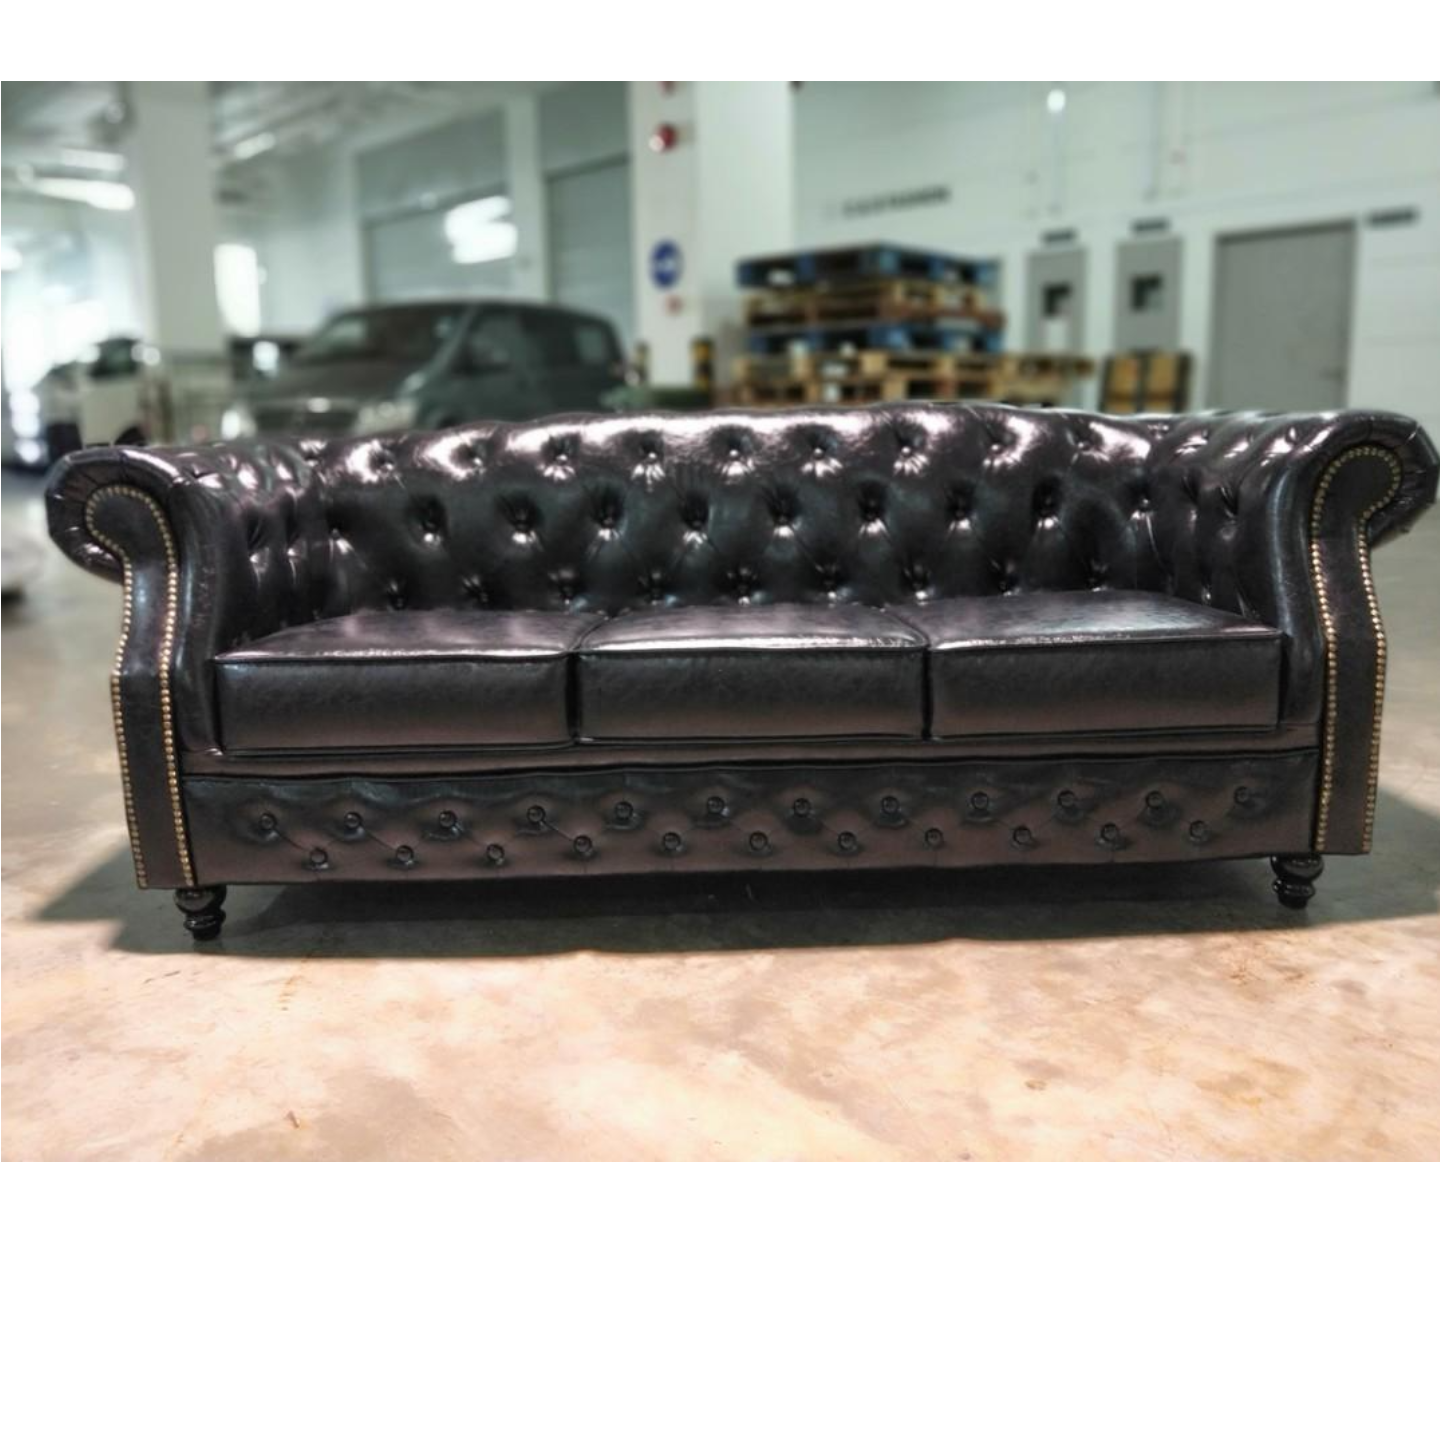 BOTTEVA Chesterfield 3 Seater Sofa in GLOSD BLACK PU